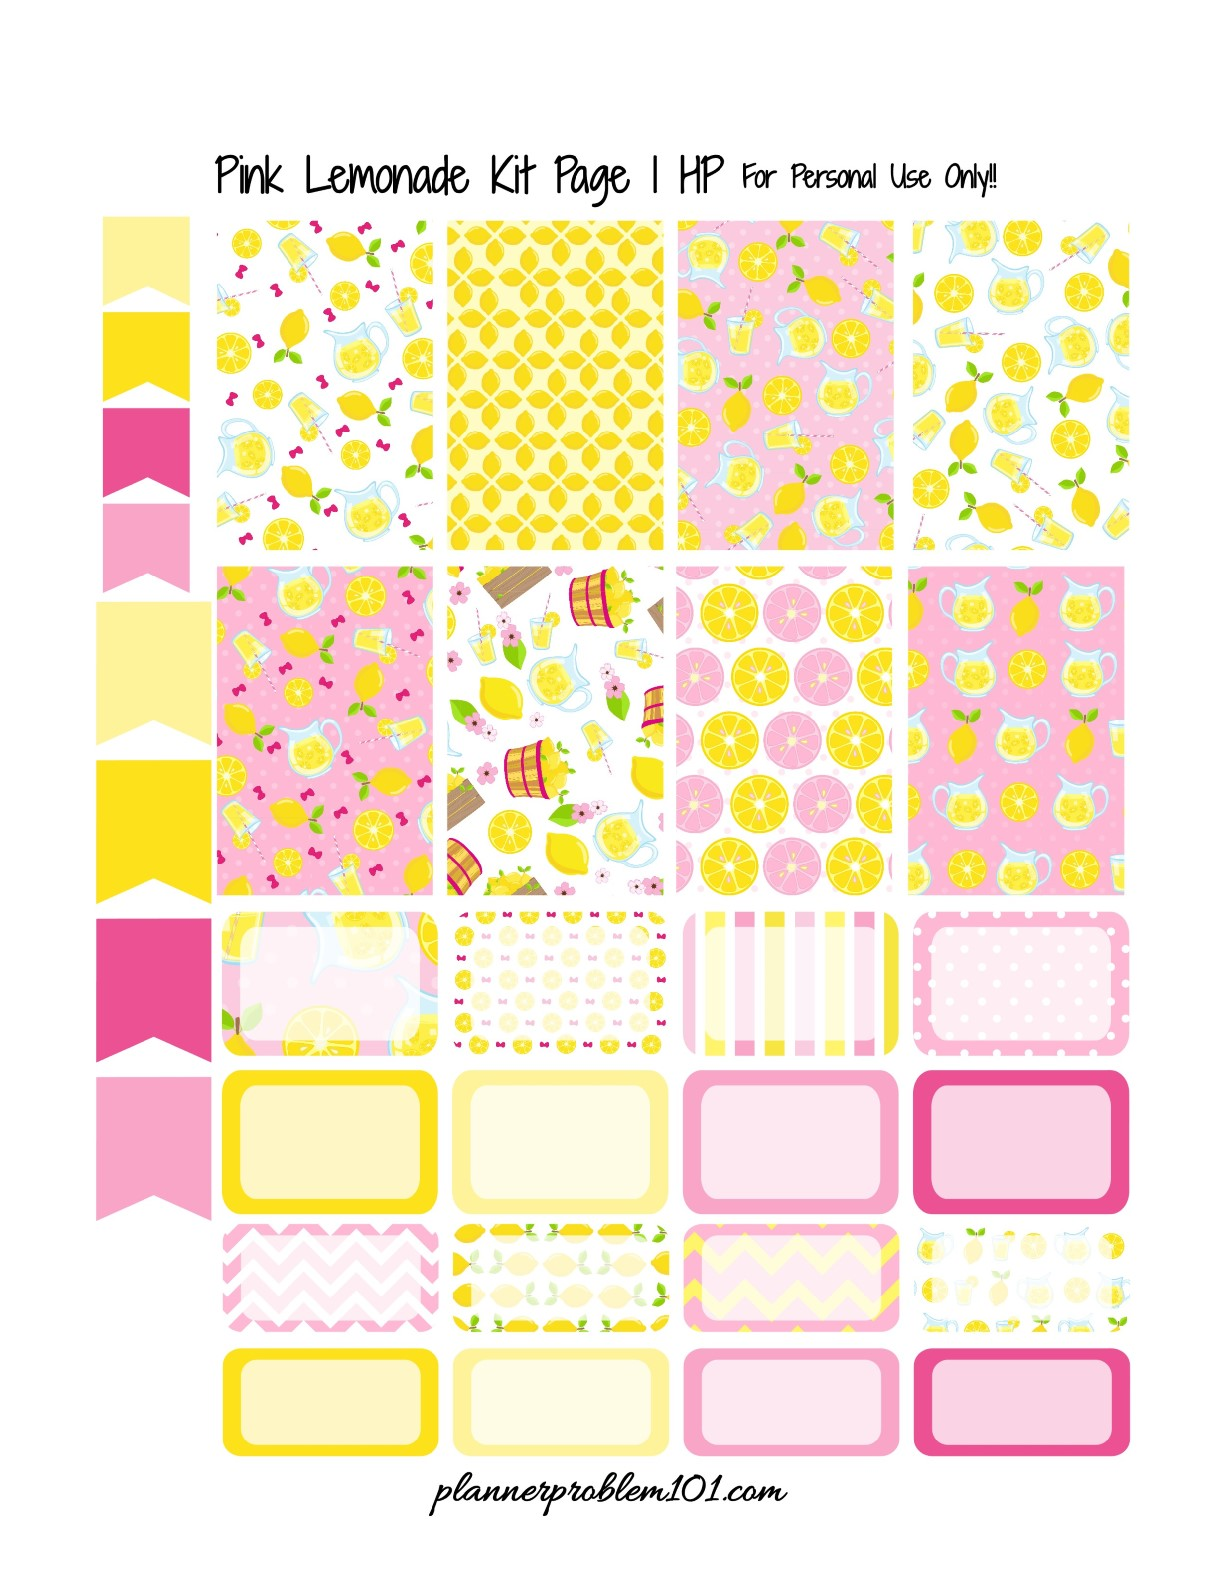 Pink Lemonade Kit! | Free Printable Planner Stickers ...